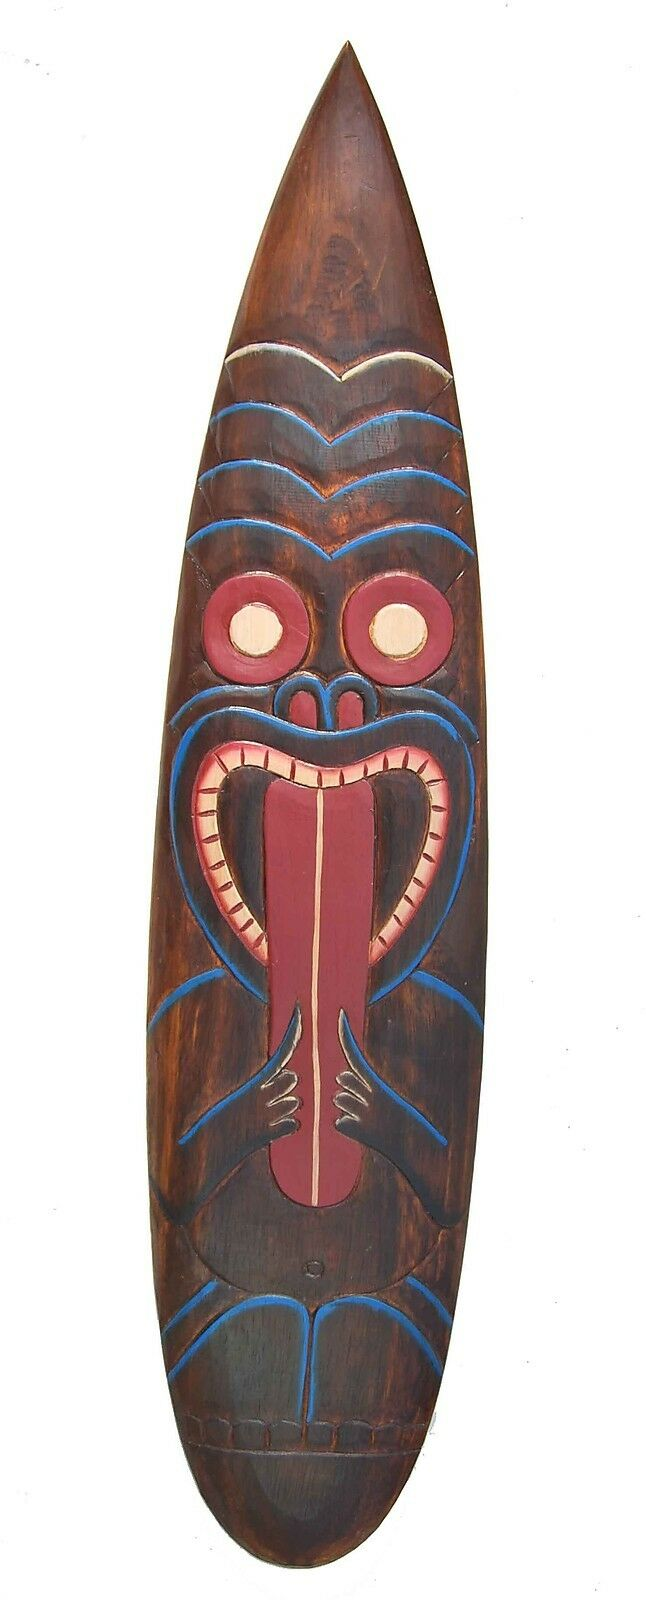 Tiki Surf Board 100cm to Hang Sign Tiki Style Surfboard South Seas Easter Island